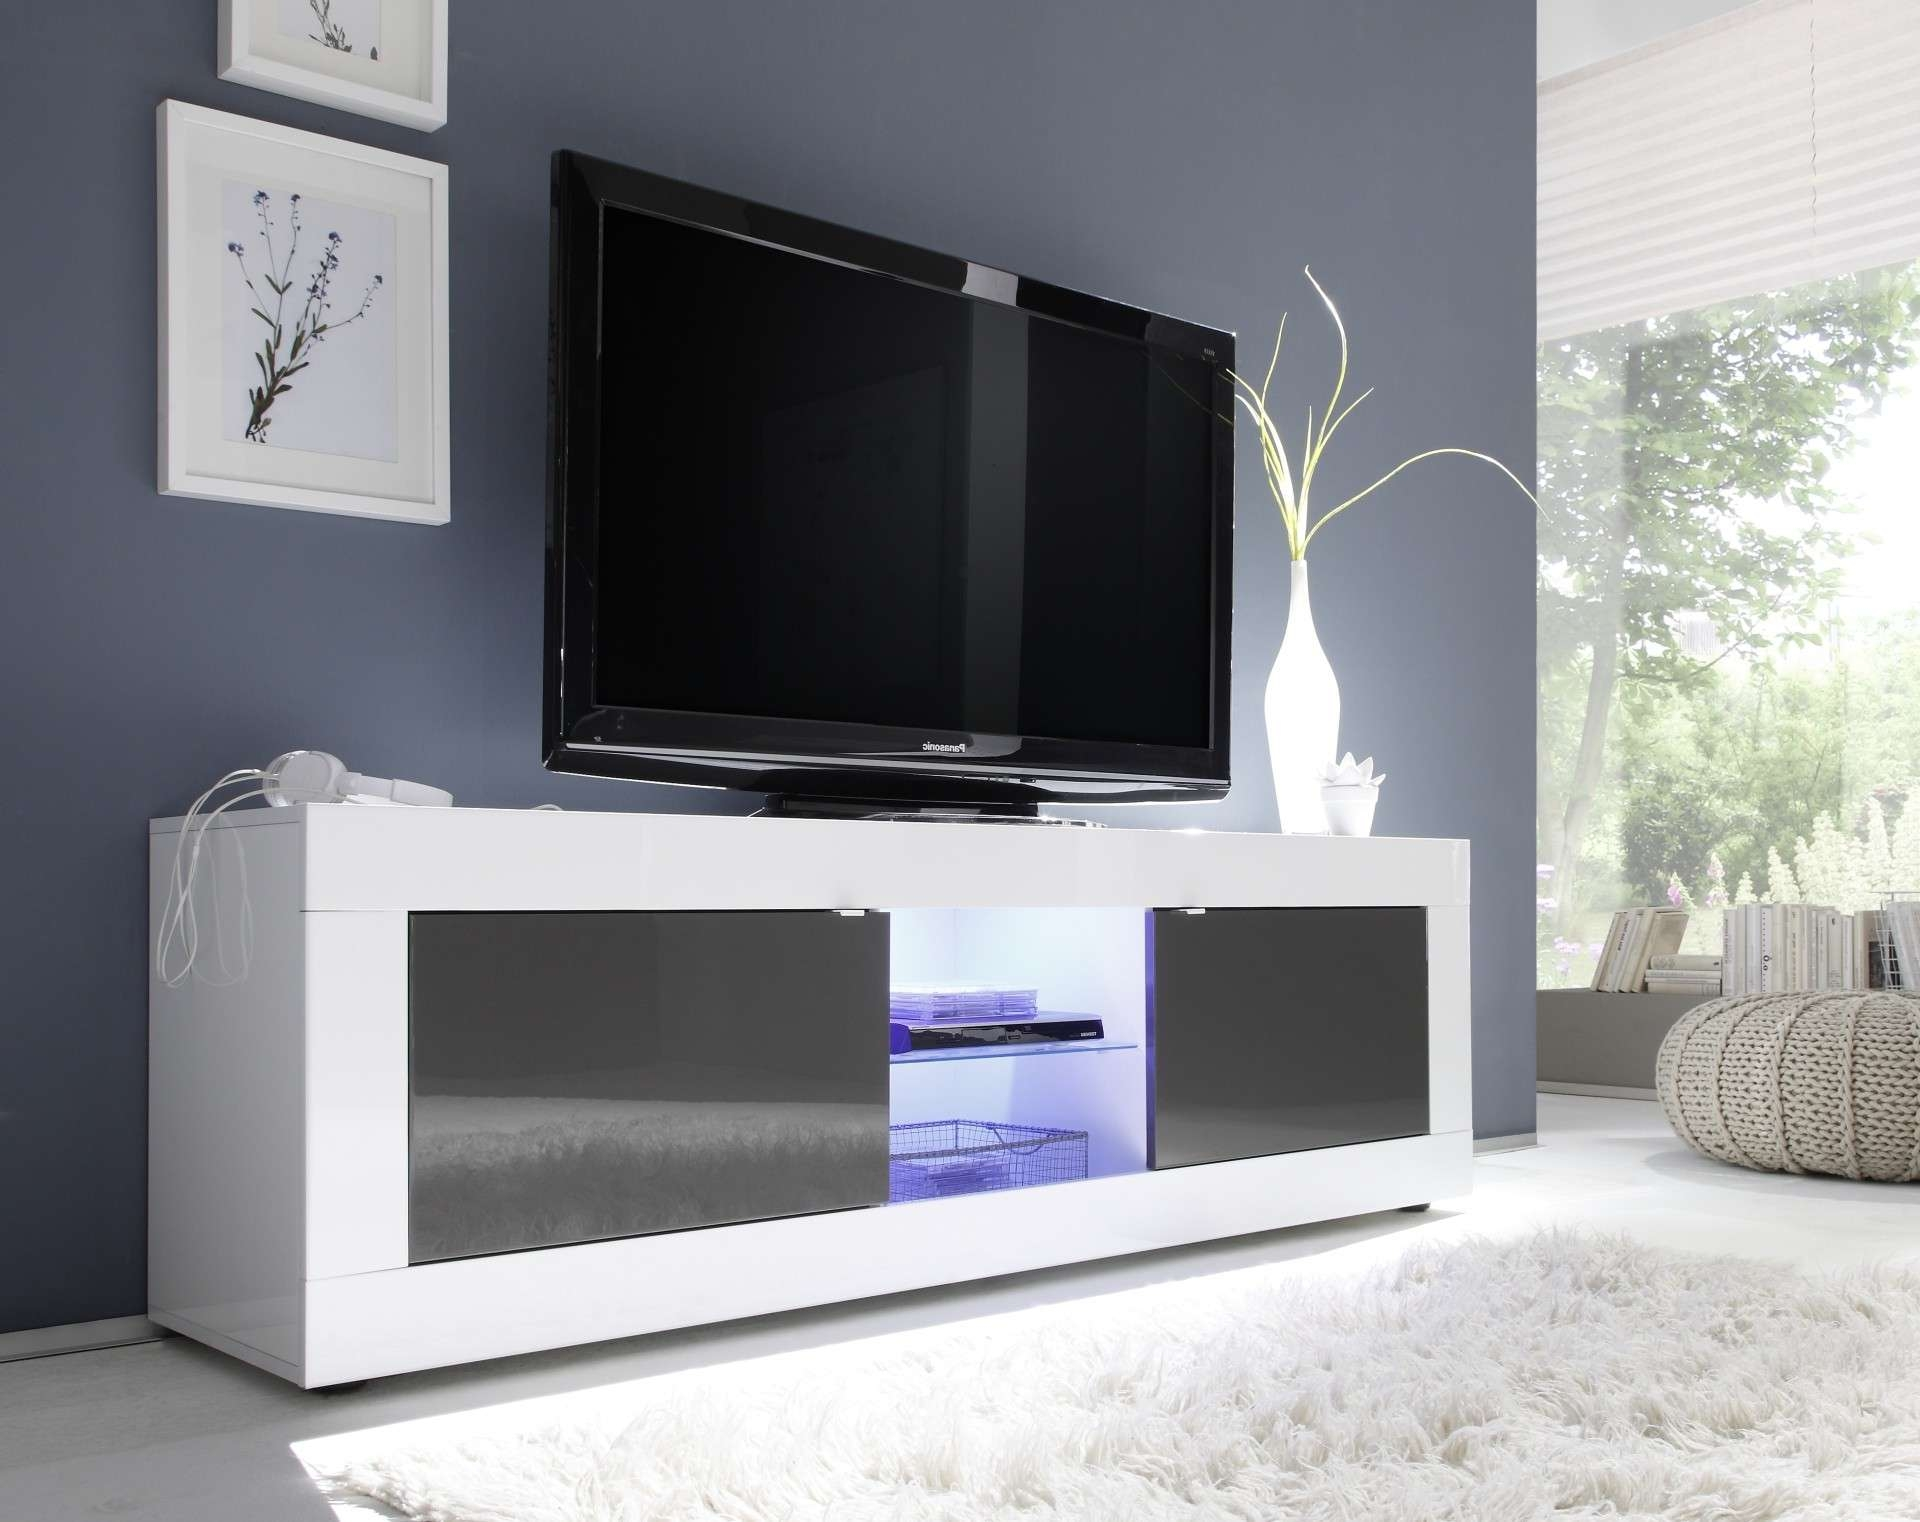 Fancy Tv Stands For 65 Inch Tvs 47 For Modern Home Decor With Regard To Fancy Tv Stands (View 7 of 15)